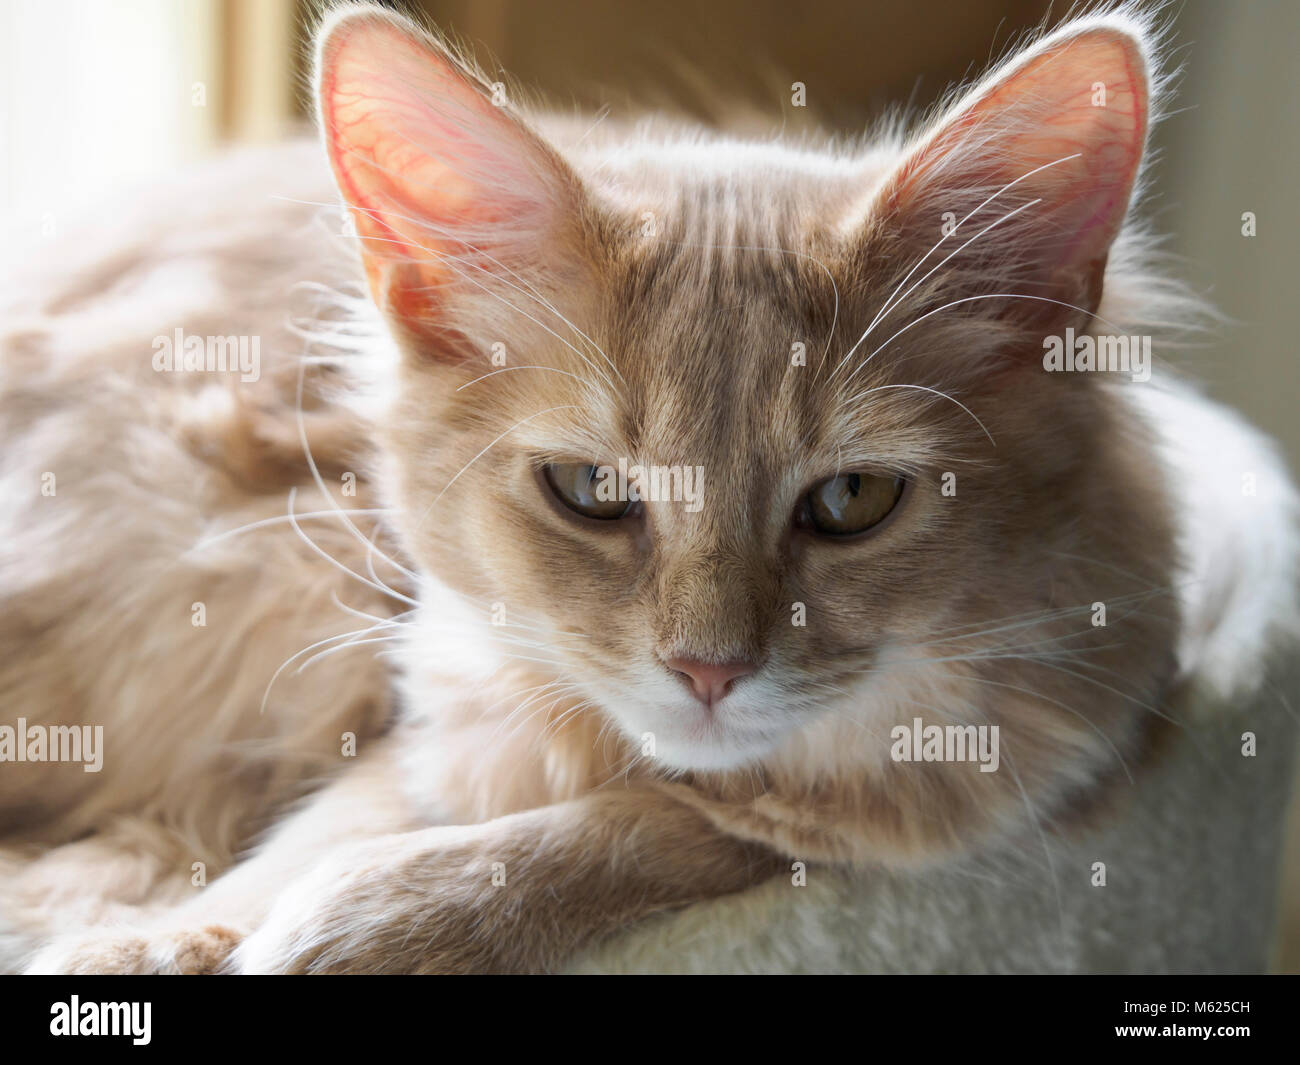 Somali breed cat. Fawn kitten, pedigree, long hair breed. Four months old. - Stock Image